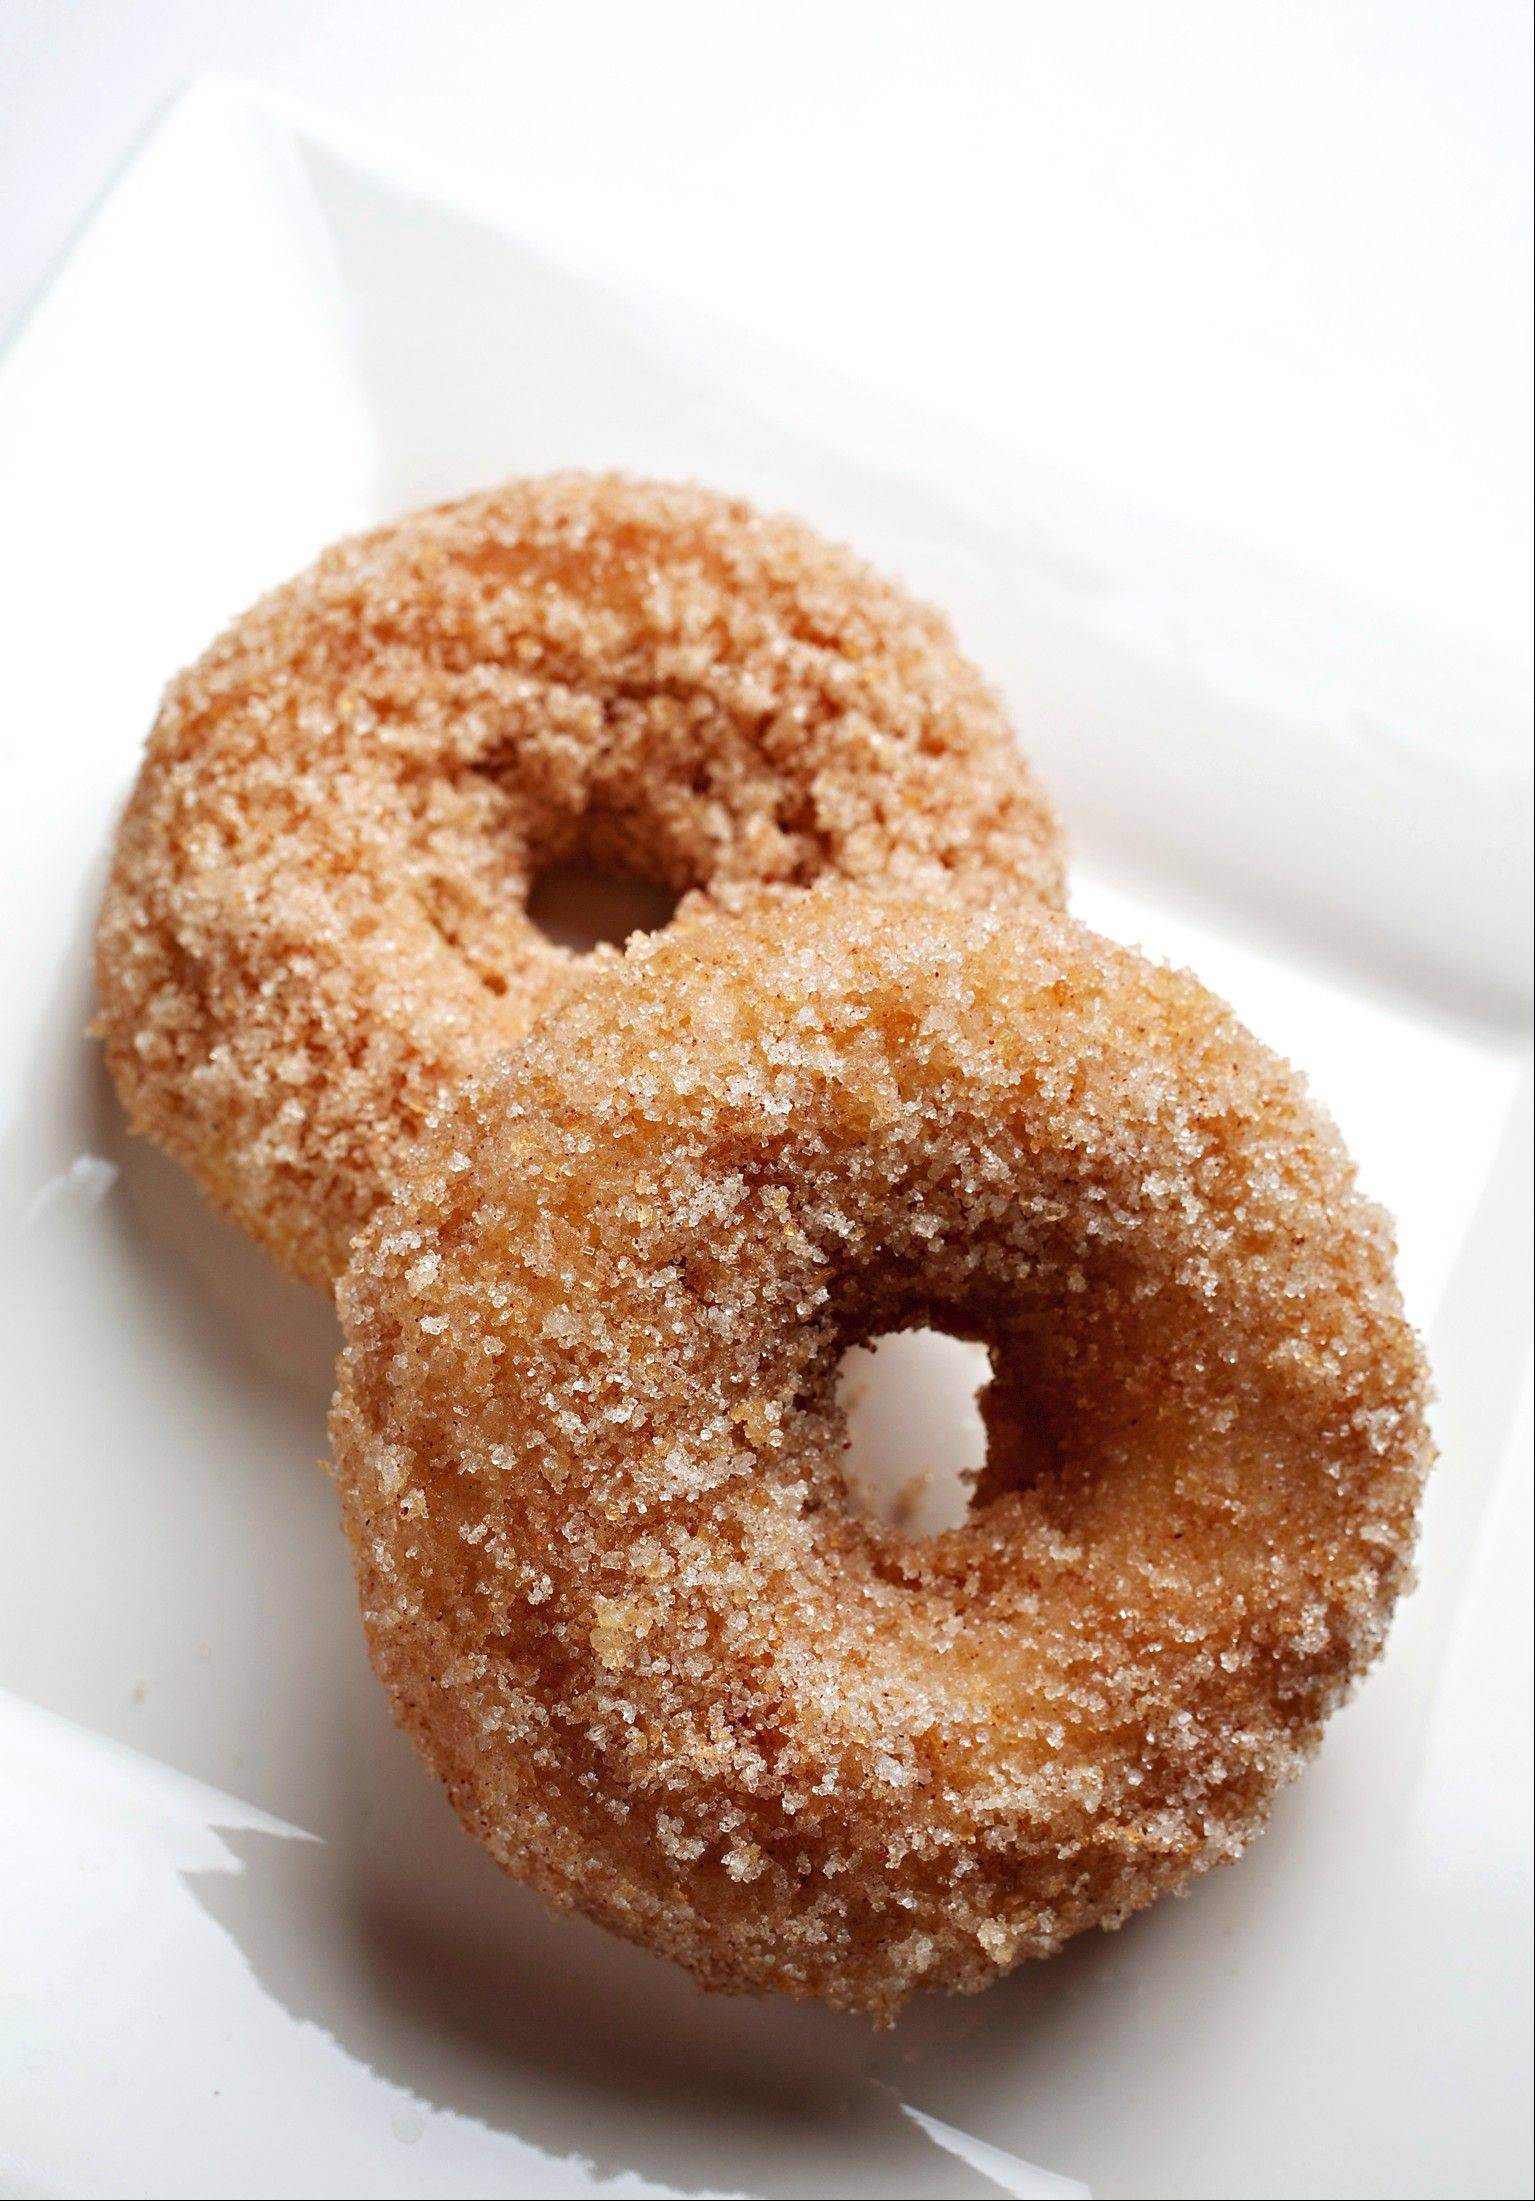 Serve Cinnamon Baked Doughnuts warm with hot chocolate for a fine comforting dessert on a chilly night.